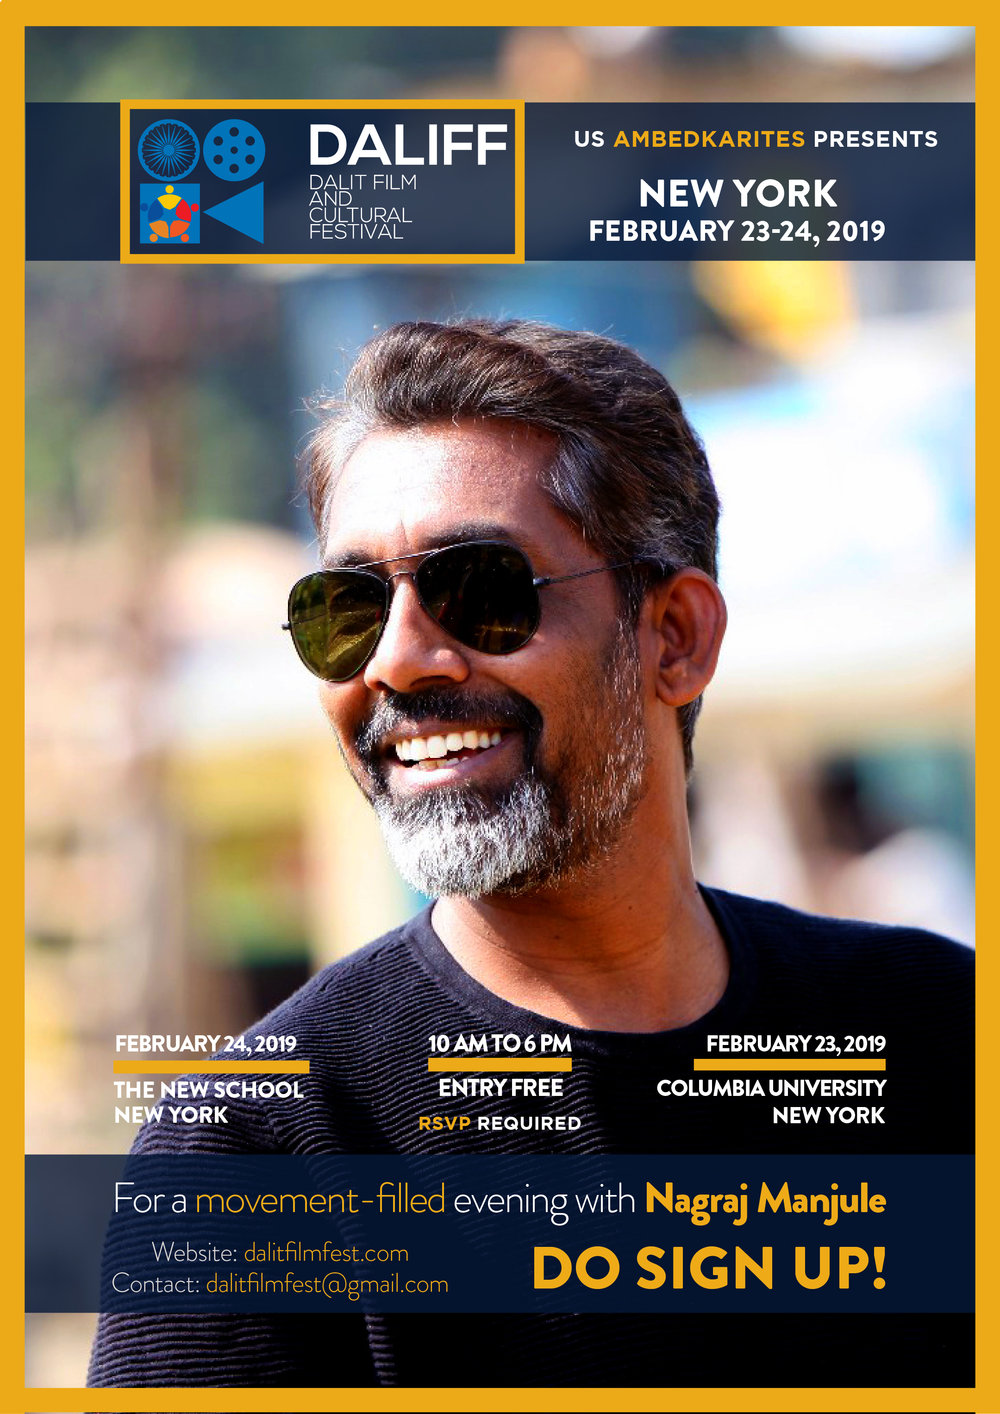 - Nagraj Manjule is an Indian Marathi filmmaker and screenwriter known for his Marathi film Sairat and his first short film, Pistulya, for which he received National Film Award in Non-Feature Film category. He published a book of poetry in Marathi titled Unhachya Katavirudhha which won the Bhairuratan Damani Sahitya Puraskar.At the 61st National Film Awards, Fandry won the Indira Gandhi Award for Best Debut Film of a Director.